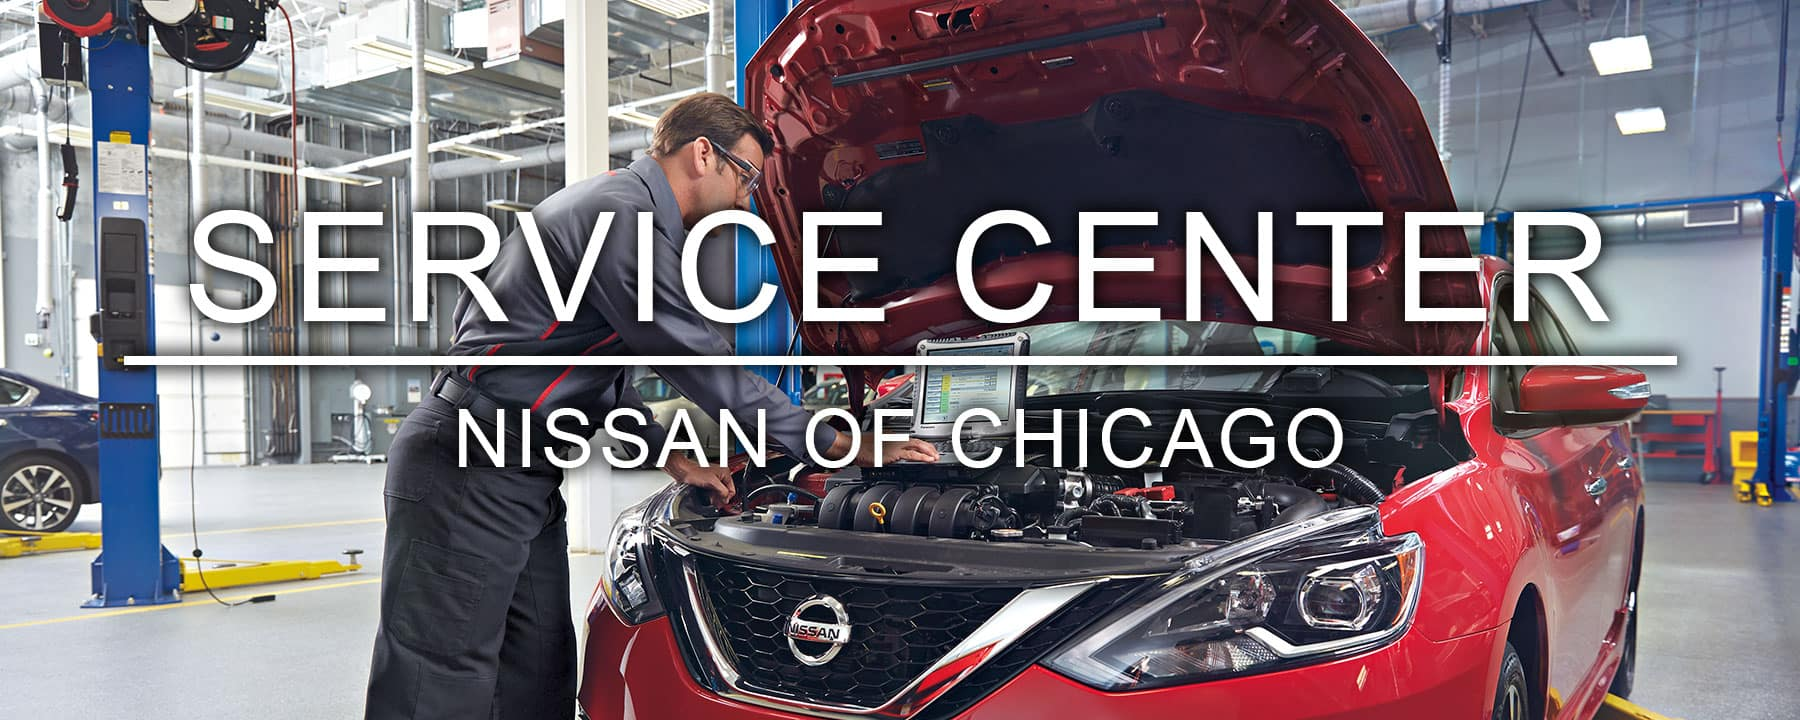 Berman Nissan of Chicago Service Center